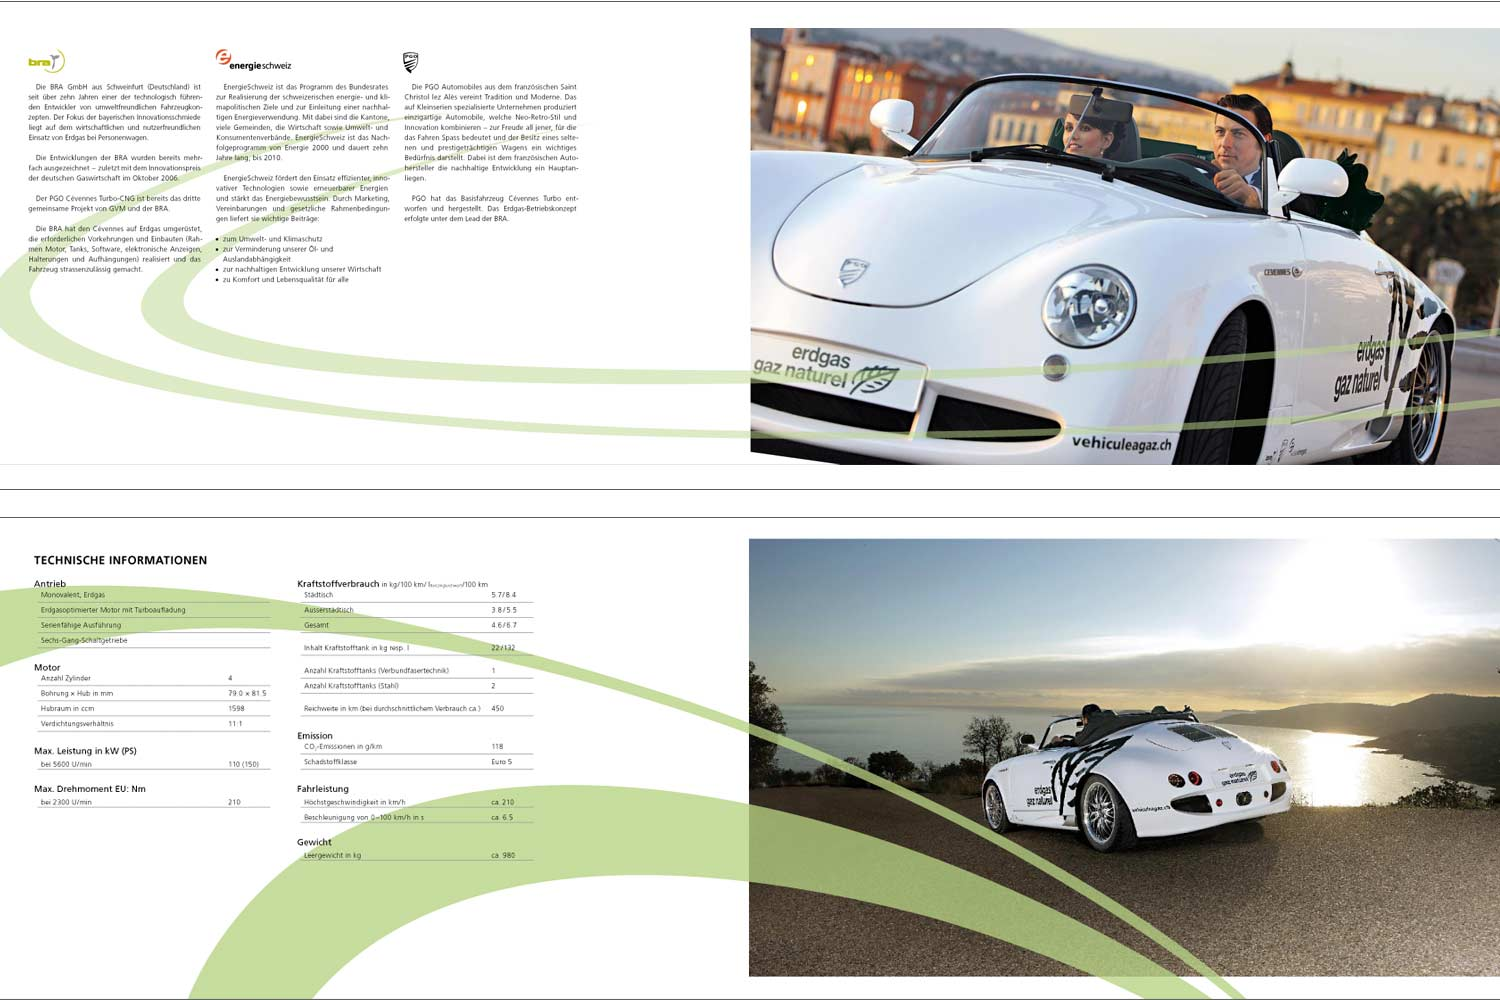 portfolio-graphic-design-brochure-gvm-08-3-4.jpg